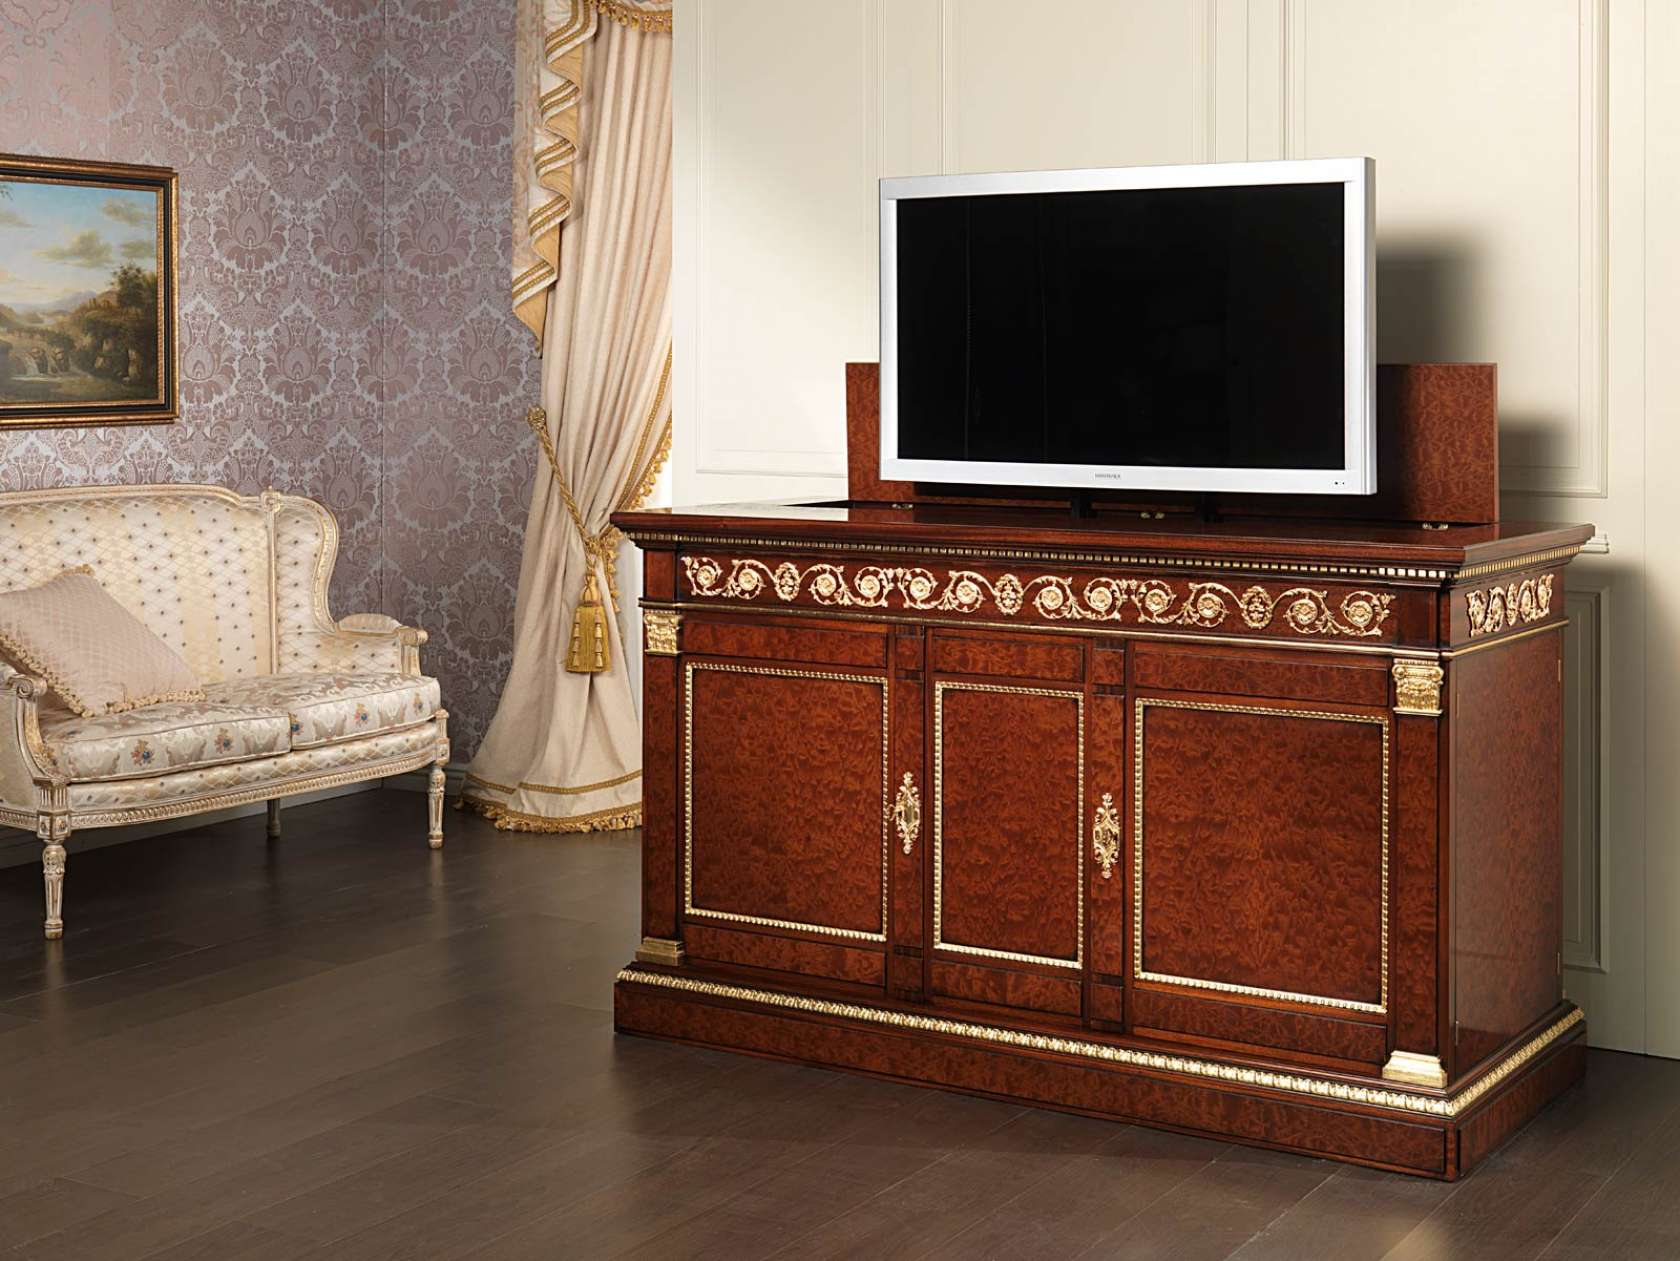 Meuble Tv Acajou Id Es De D Coration Int Rieure French Decor # Meuble Tv En Acajou